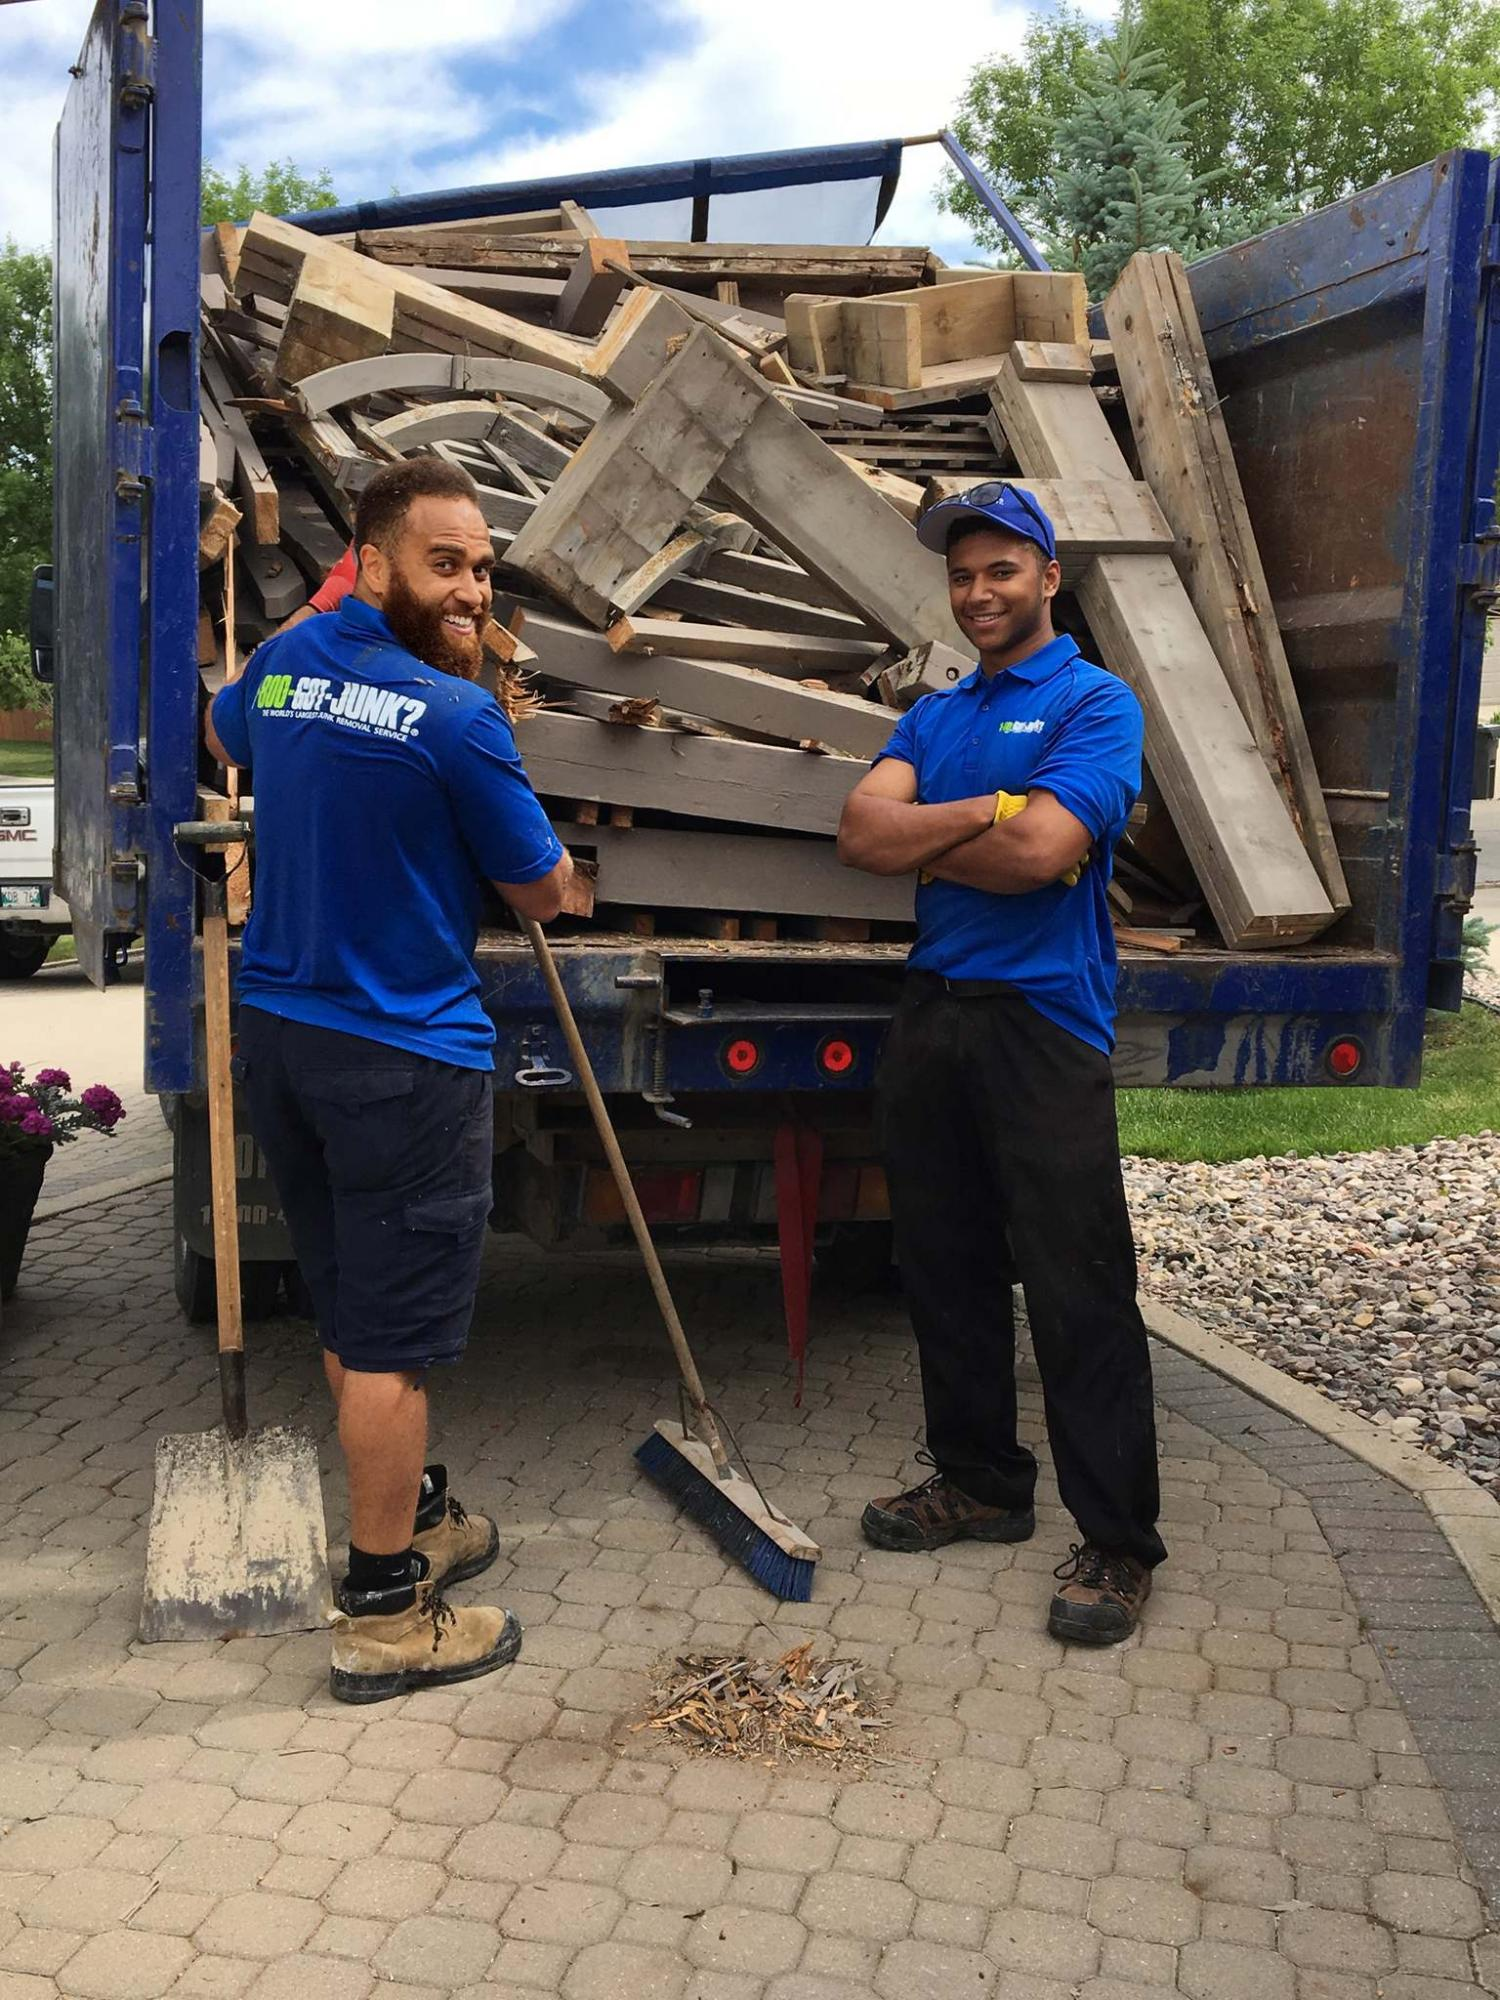 Hiring crew to remove junk takes a load off of large